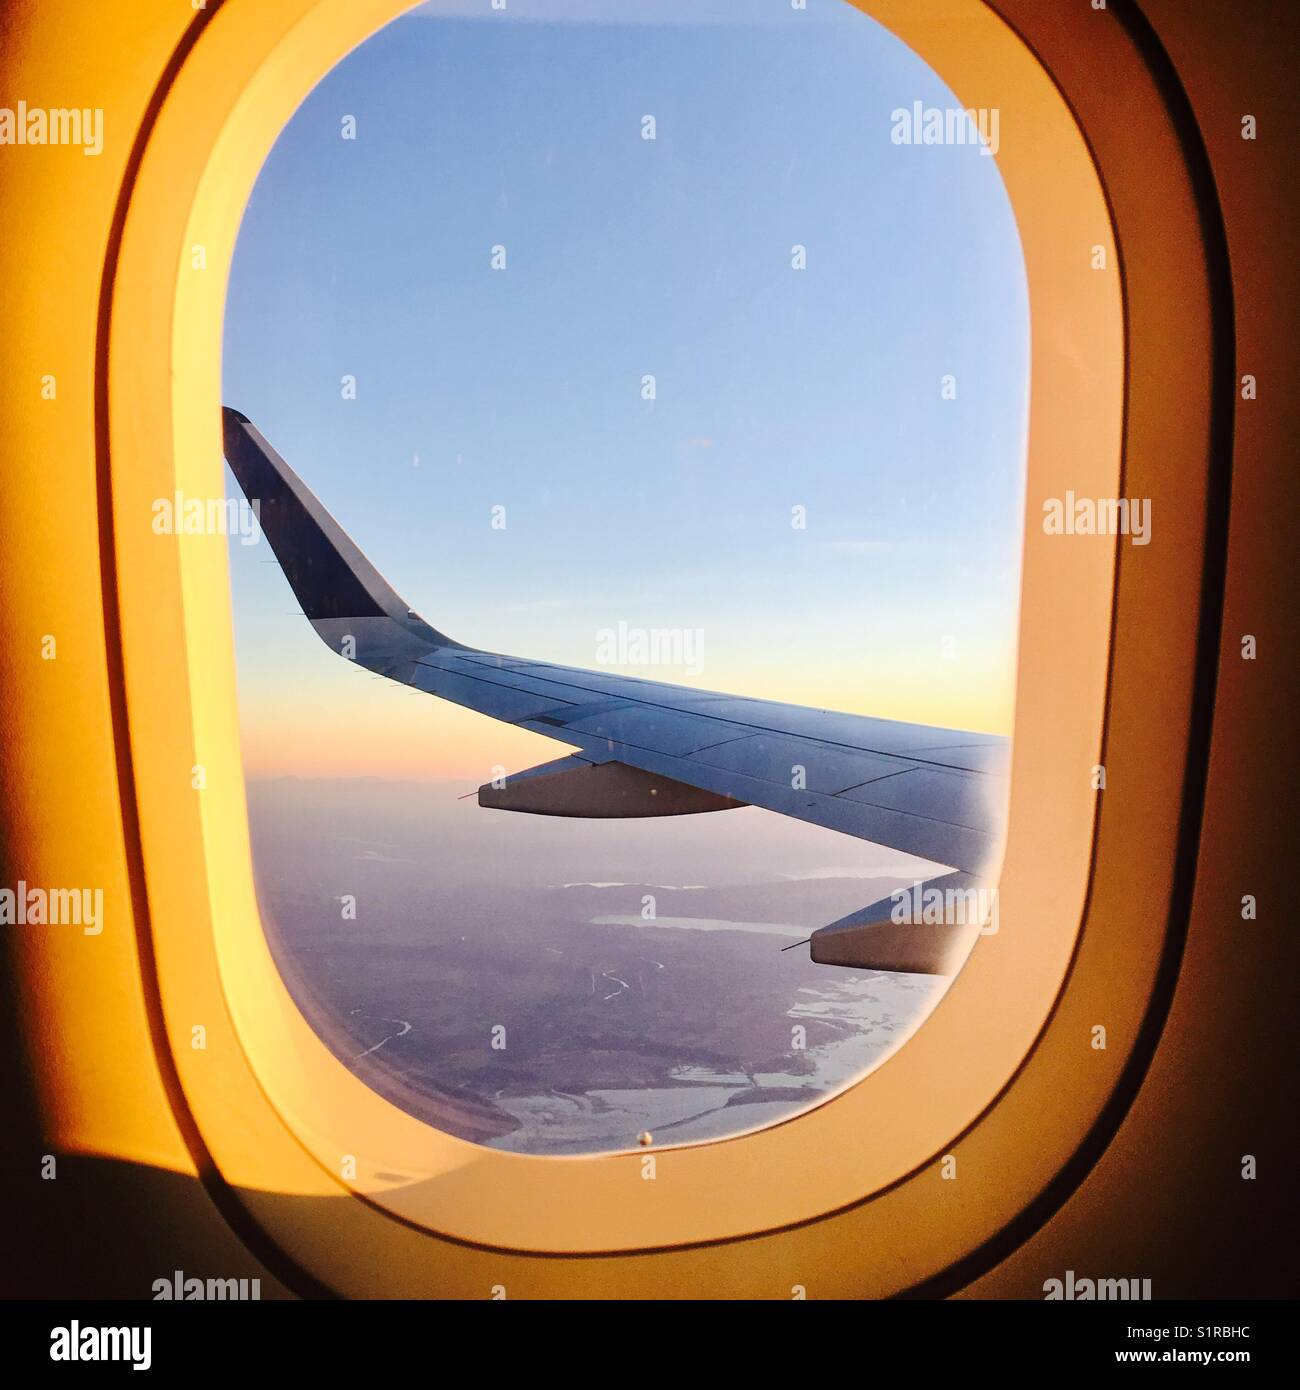 Airplane wing through the window at sunrise - Stock Image